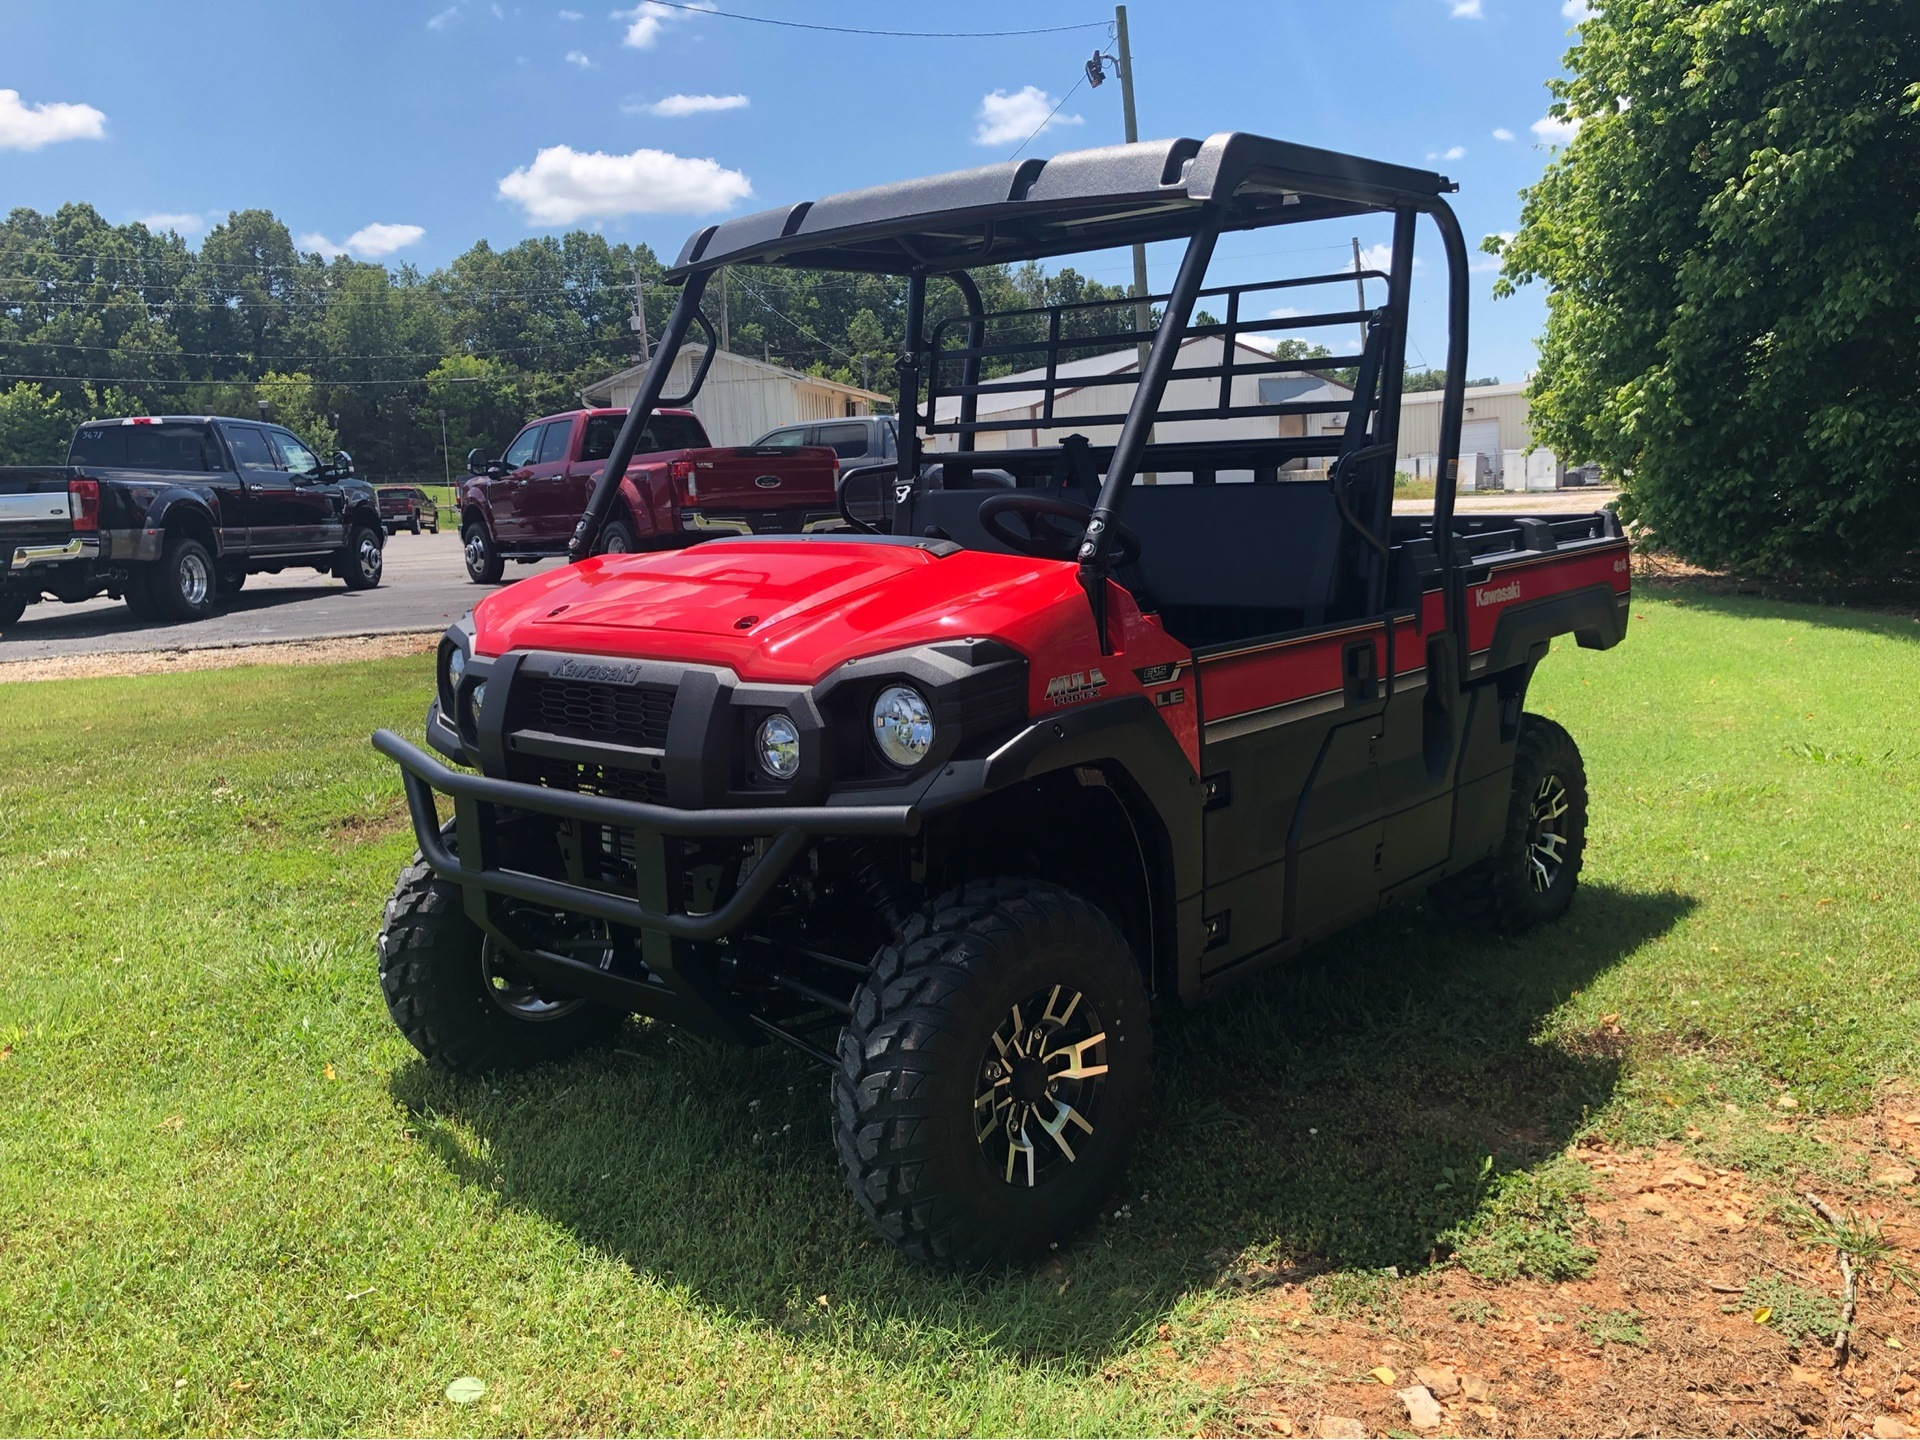 2020 Kawasaki Mule PRO-FX EPS LE in Harrison, Arkansas - Photo 4